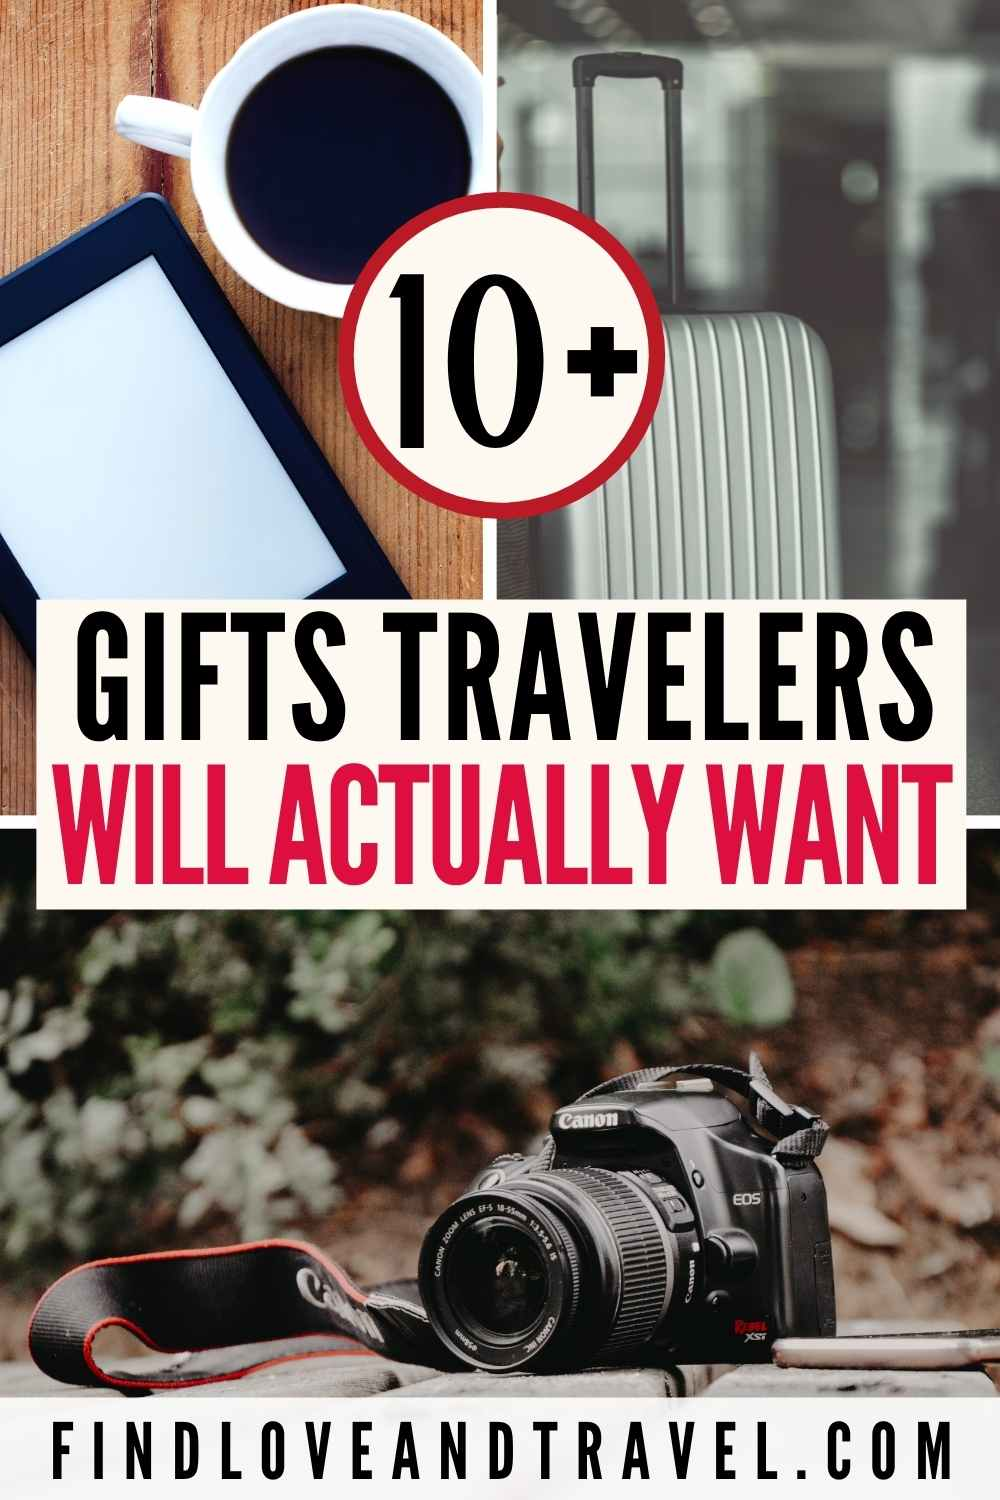 Best gifts for travelers that they will actually want